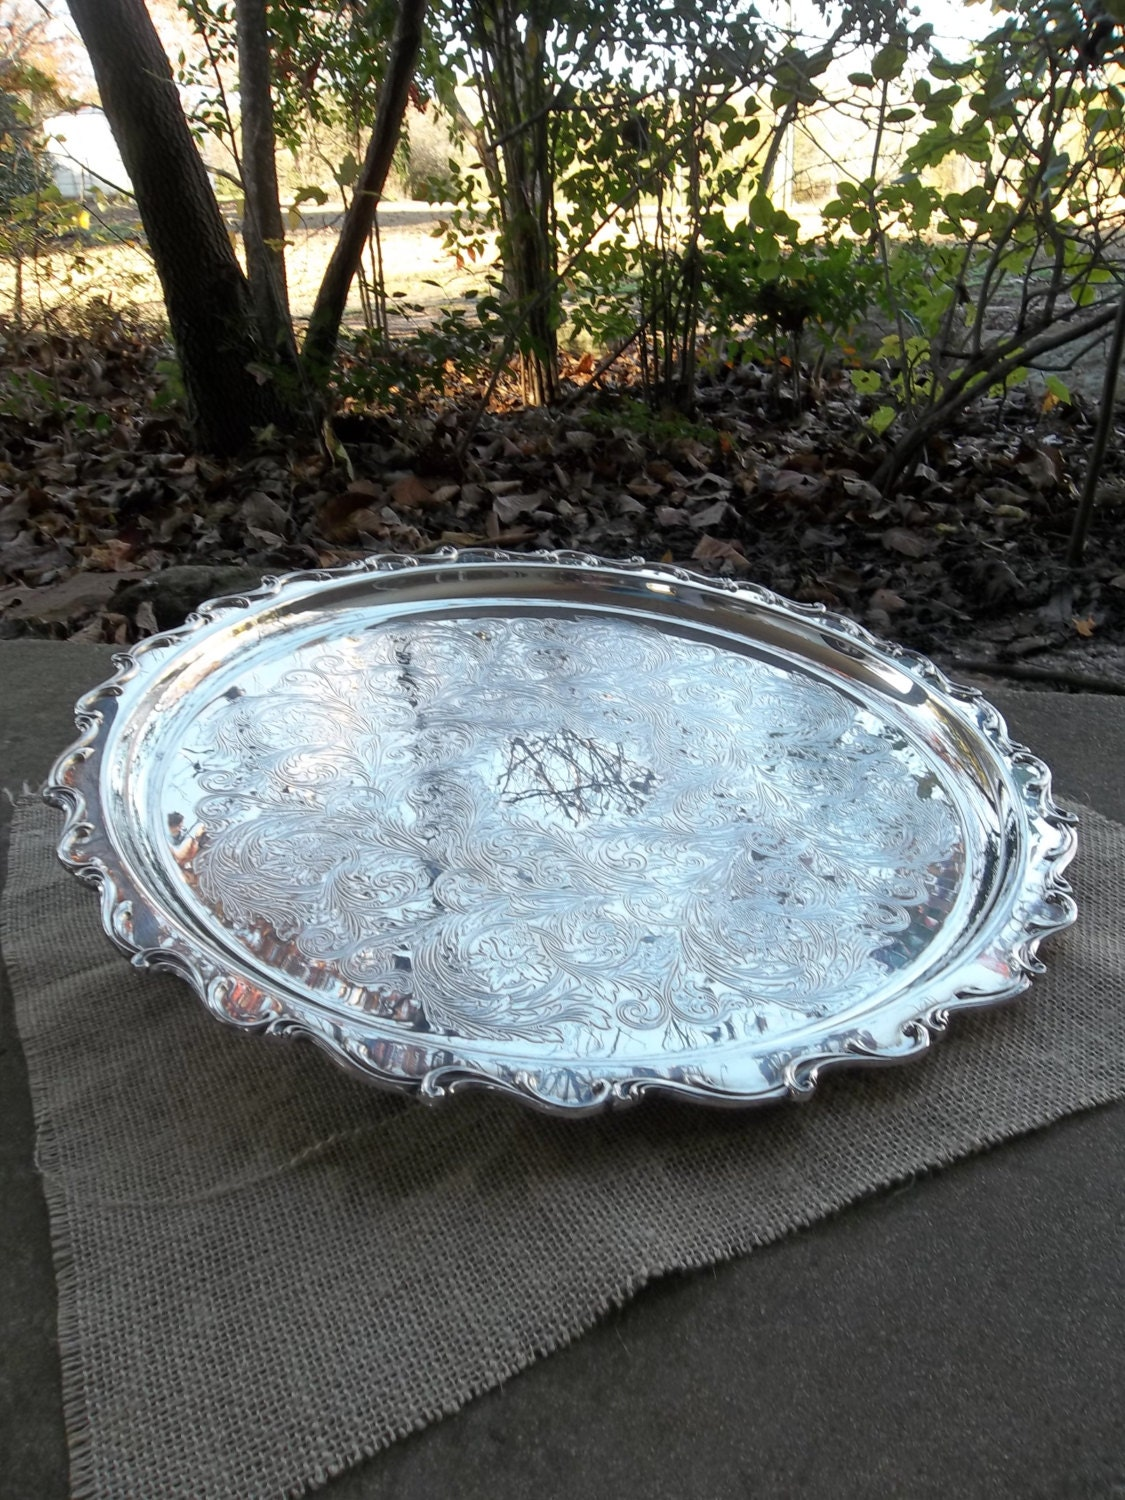 Large Vintage Silver Tray Antique JOANN Silver Plate Serving